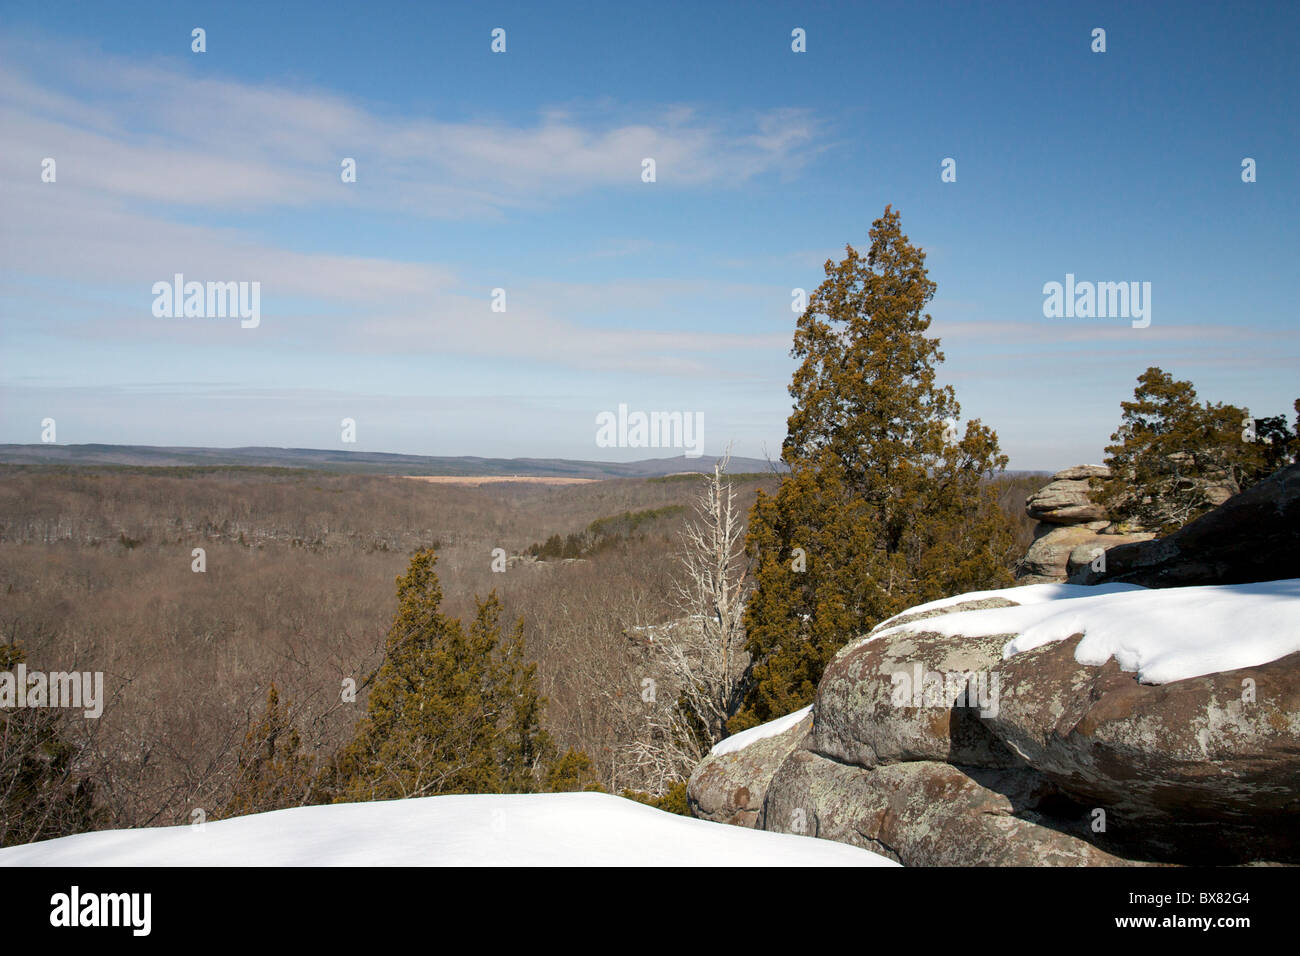 Garden of the Gods Wilderness. Southern Illinois. - Stock Image